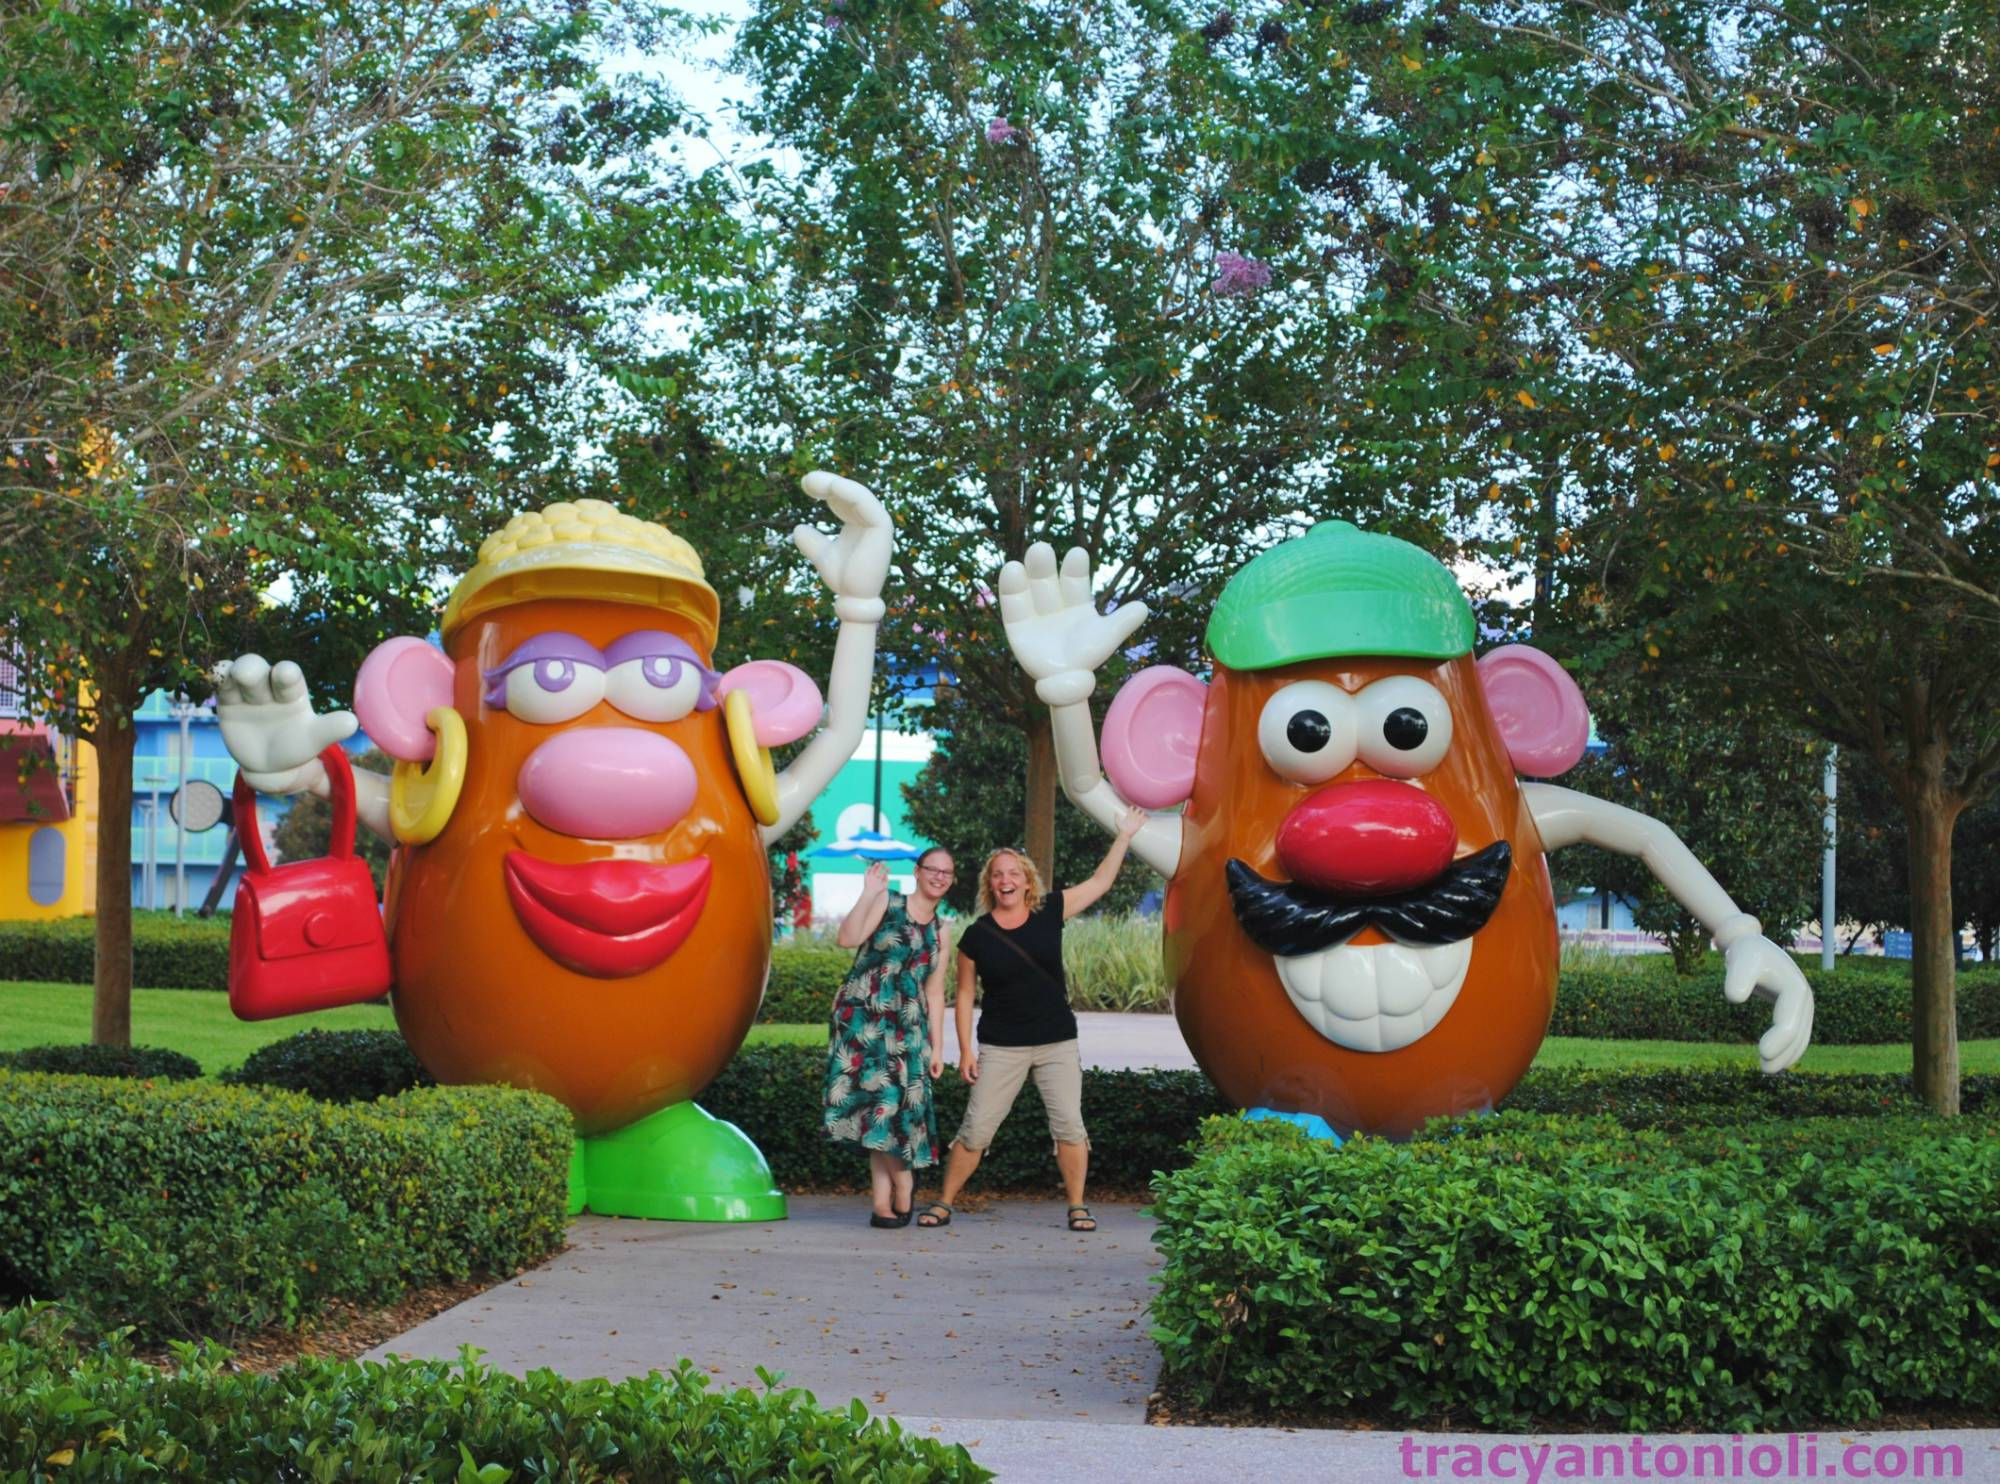 Learn more about Walt Disney World and yourself when you travel with a friend | PassPorter.com